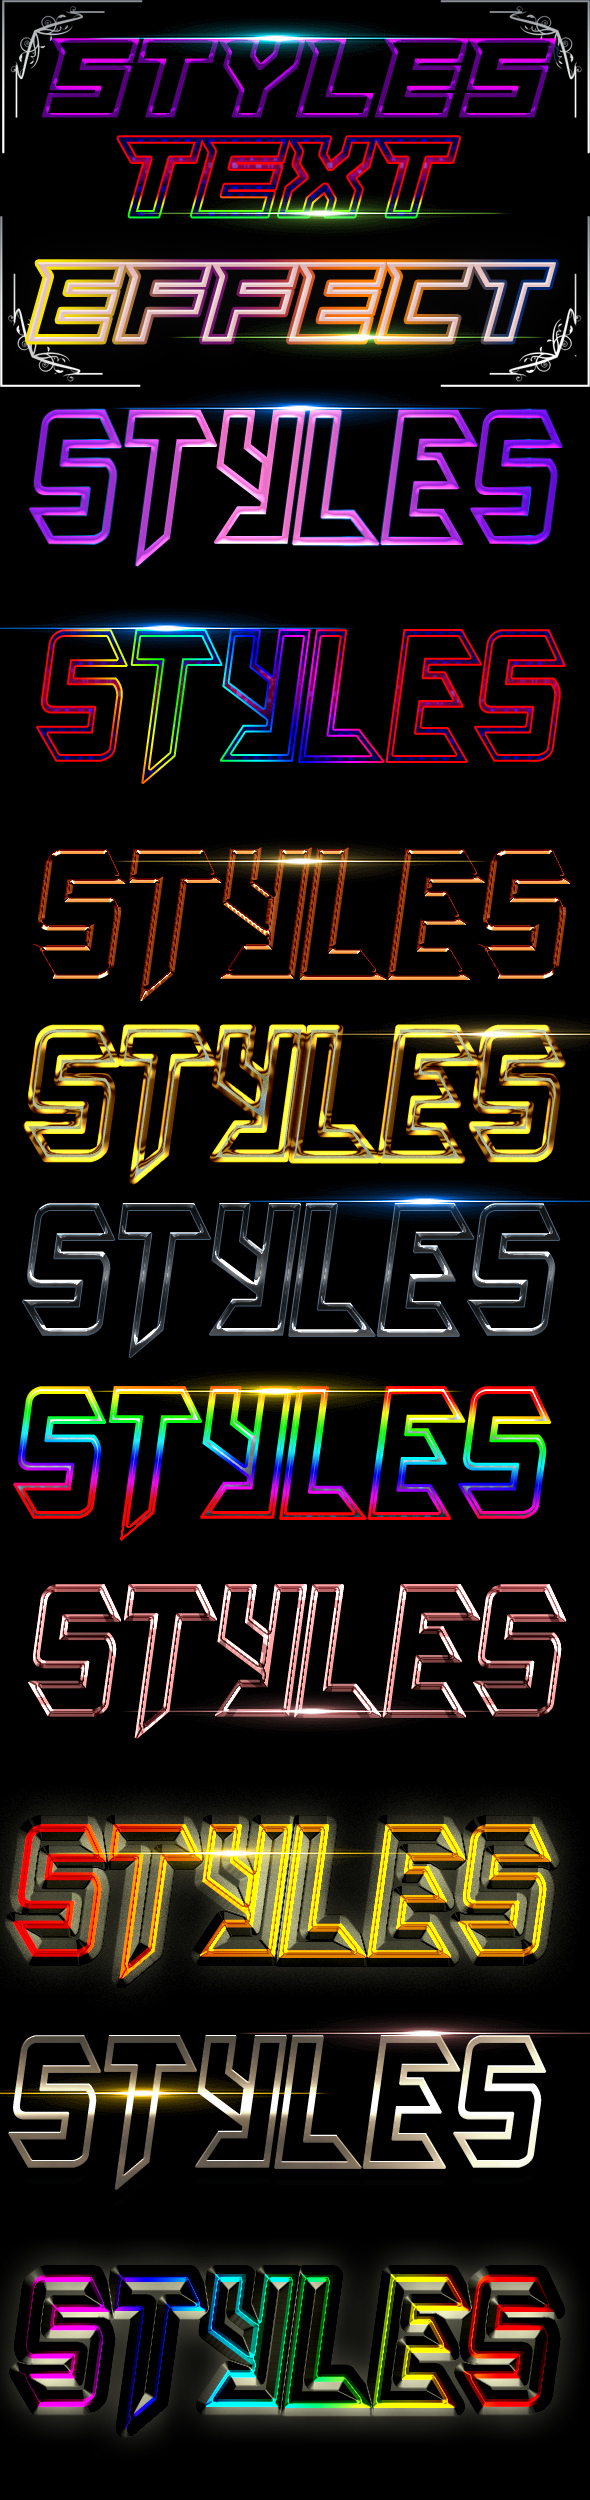 Styles Text Effect - Styles Photoshop